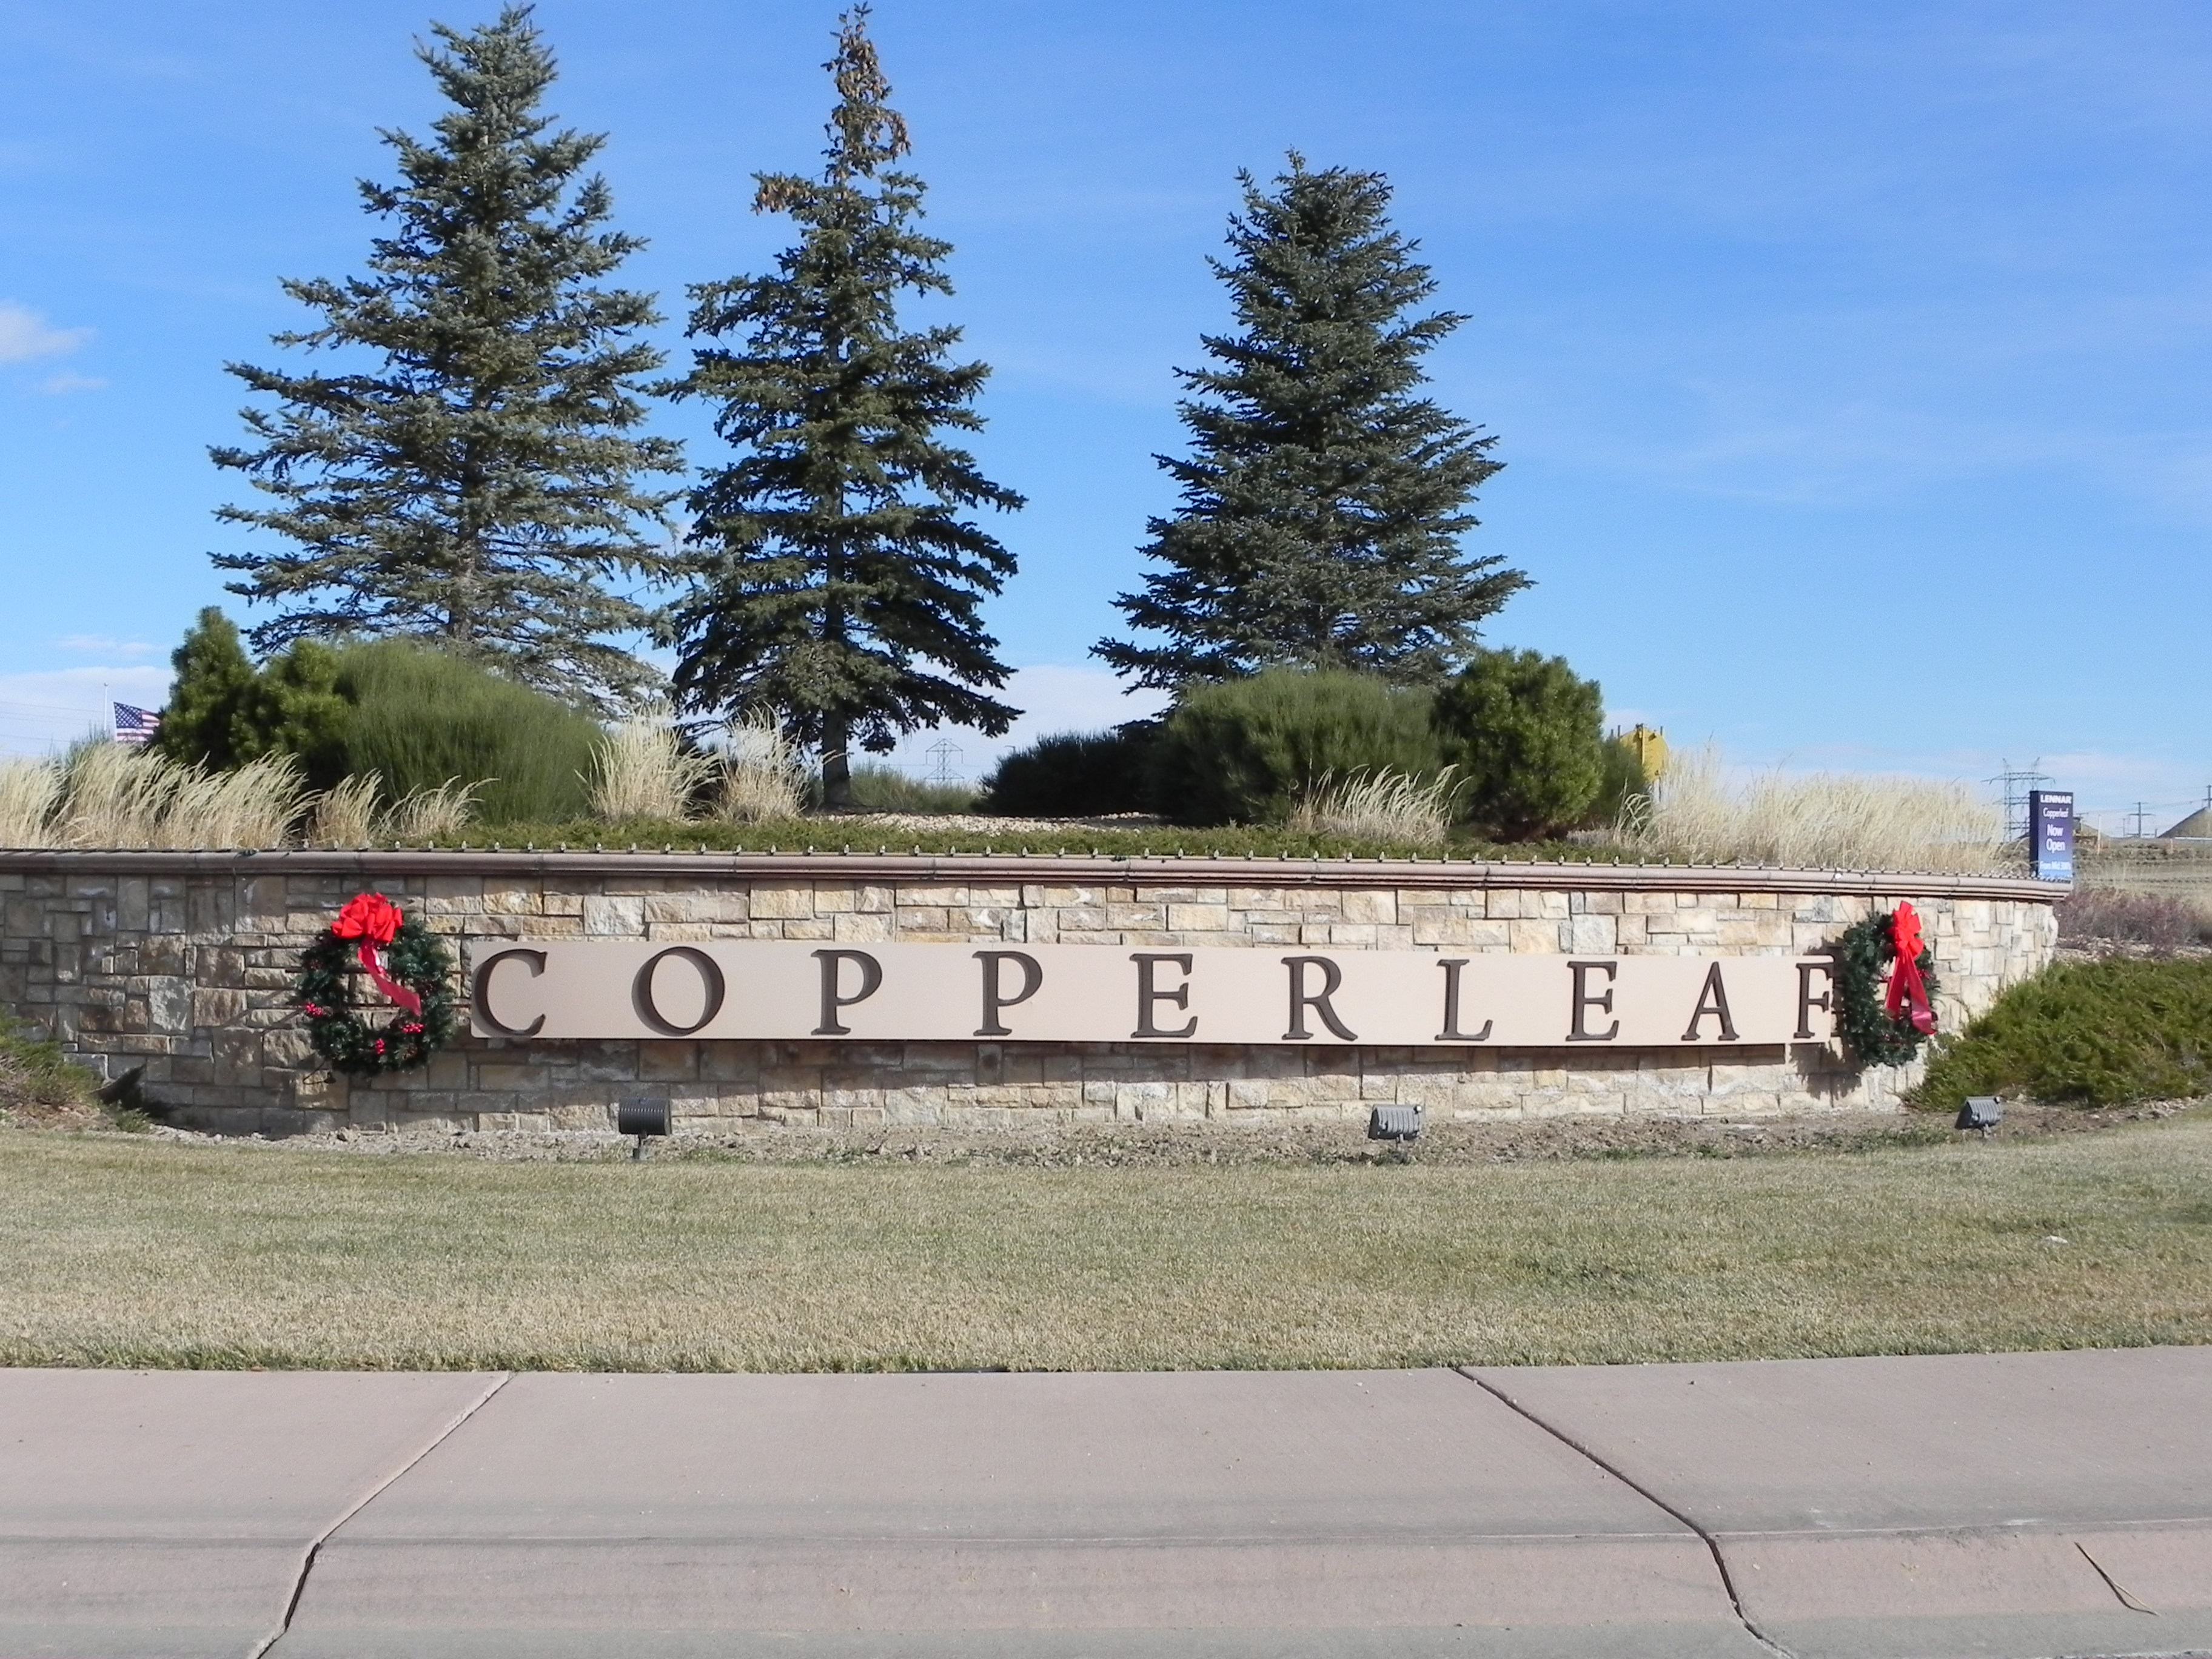 Entry of Copperleaf